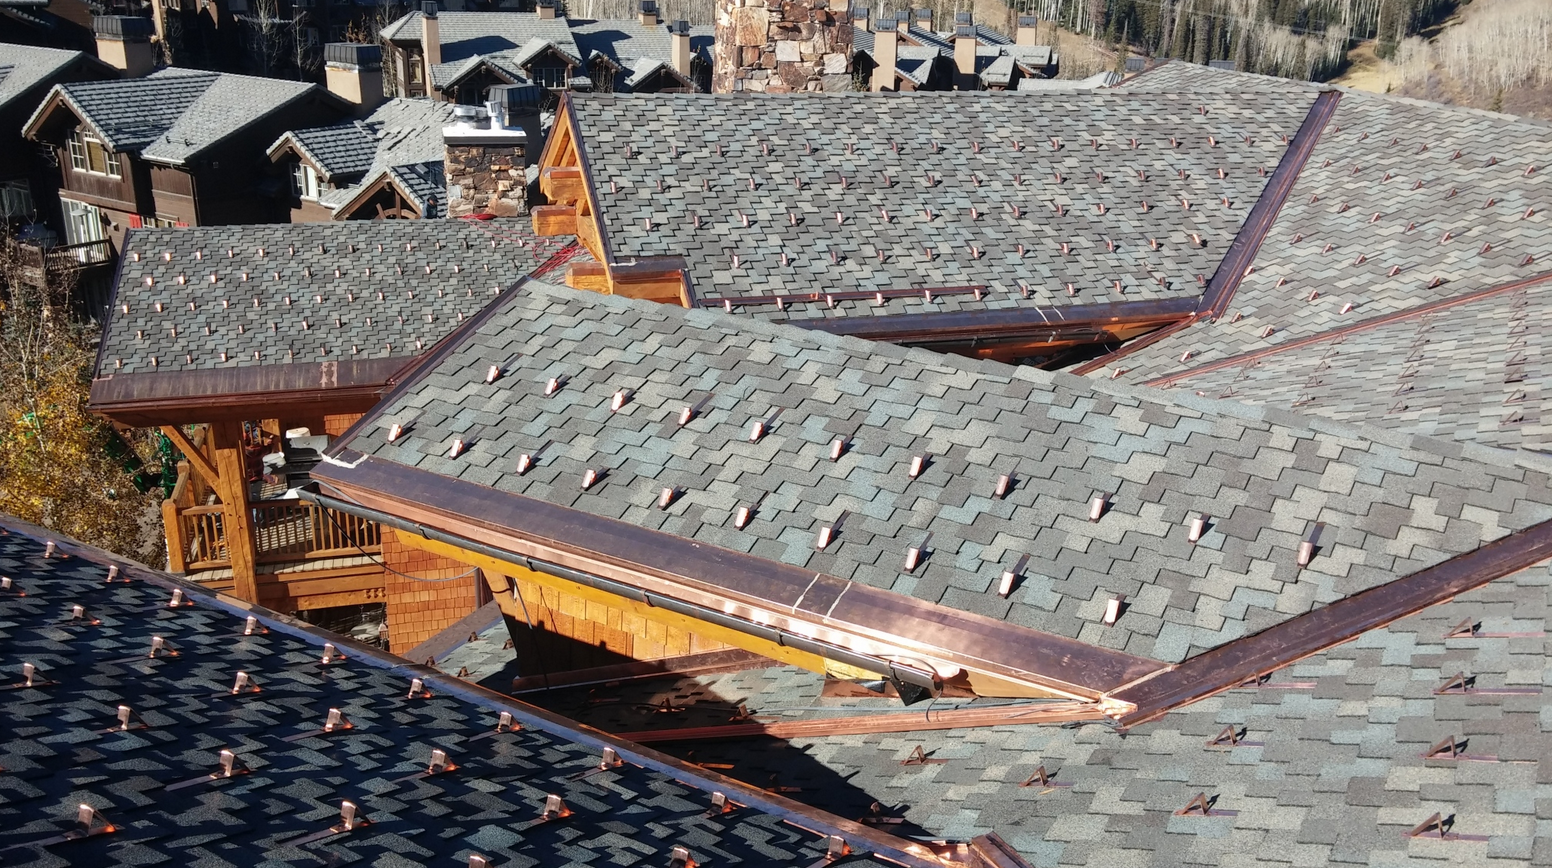 The Concrete Tile Roof And Poorly Ventilated Deck Were Causing Major  Problems For The Building Owner